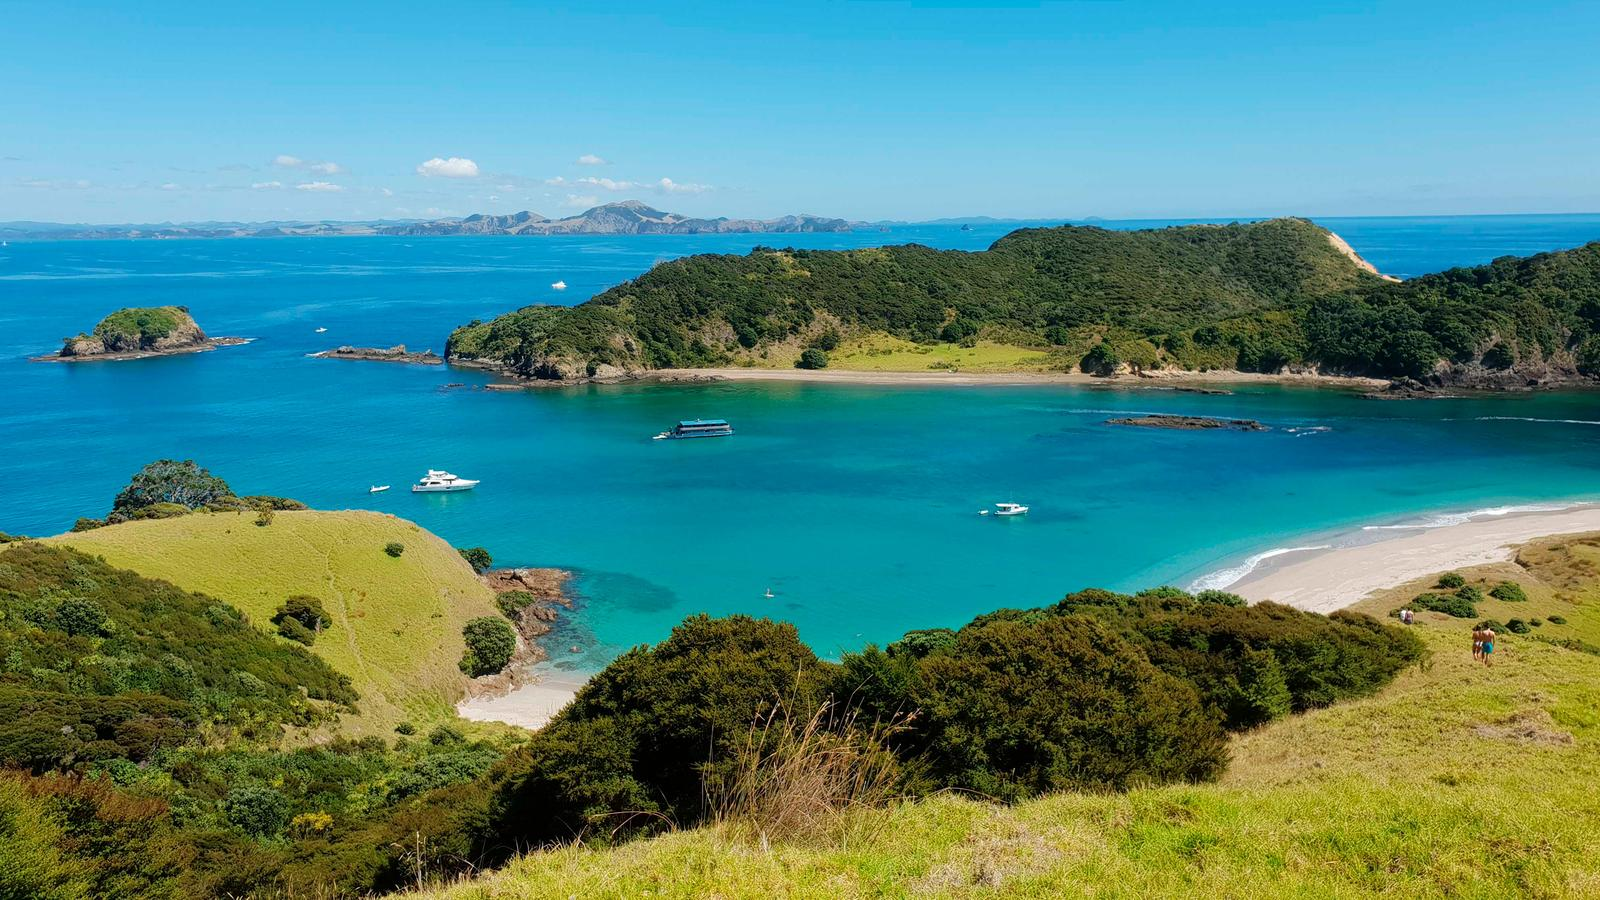 New Zealand: The Bay of Islands